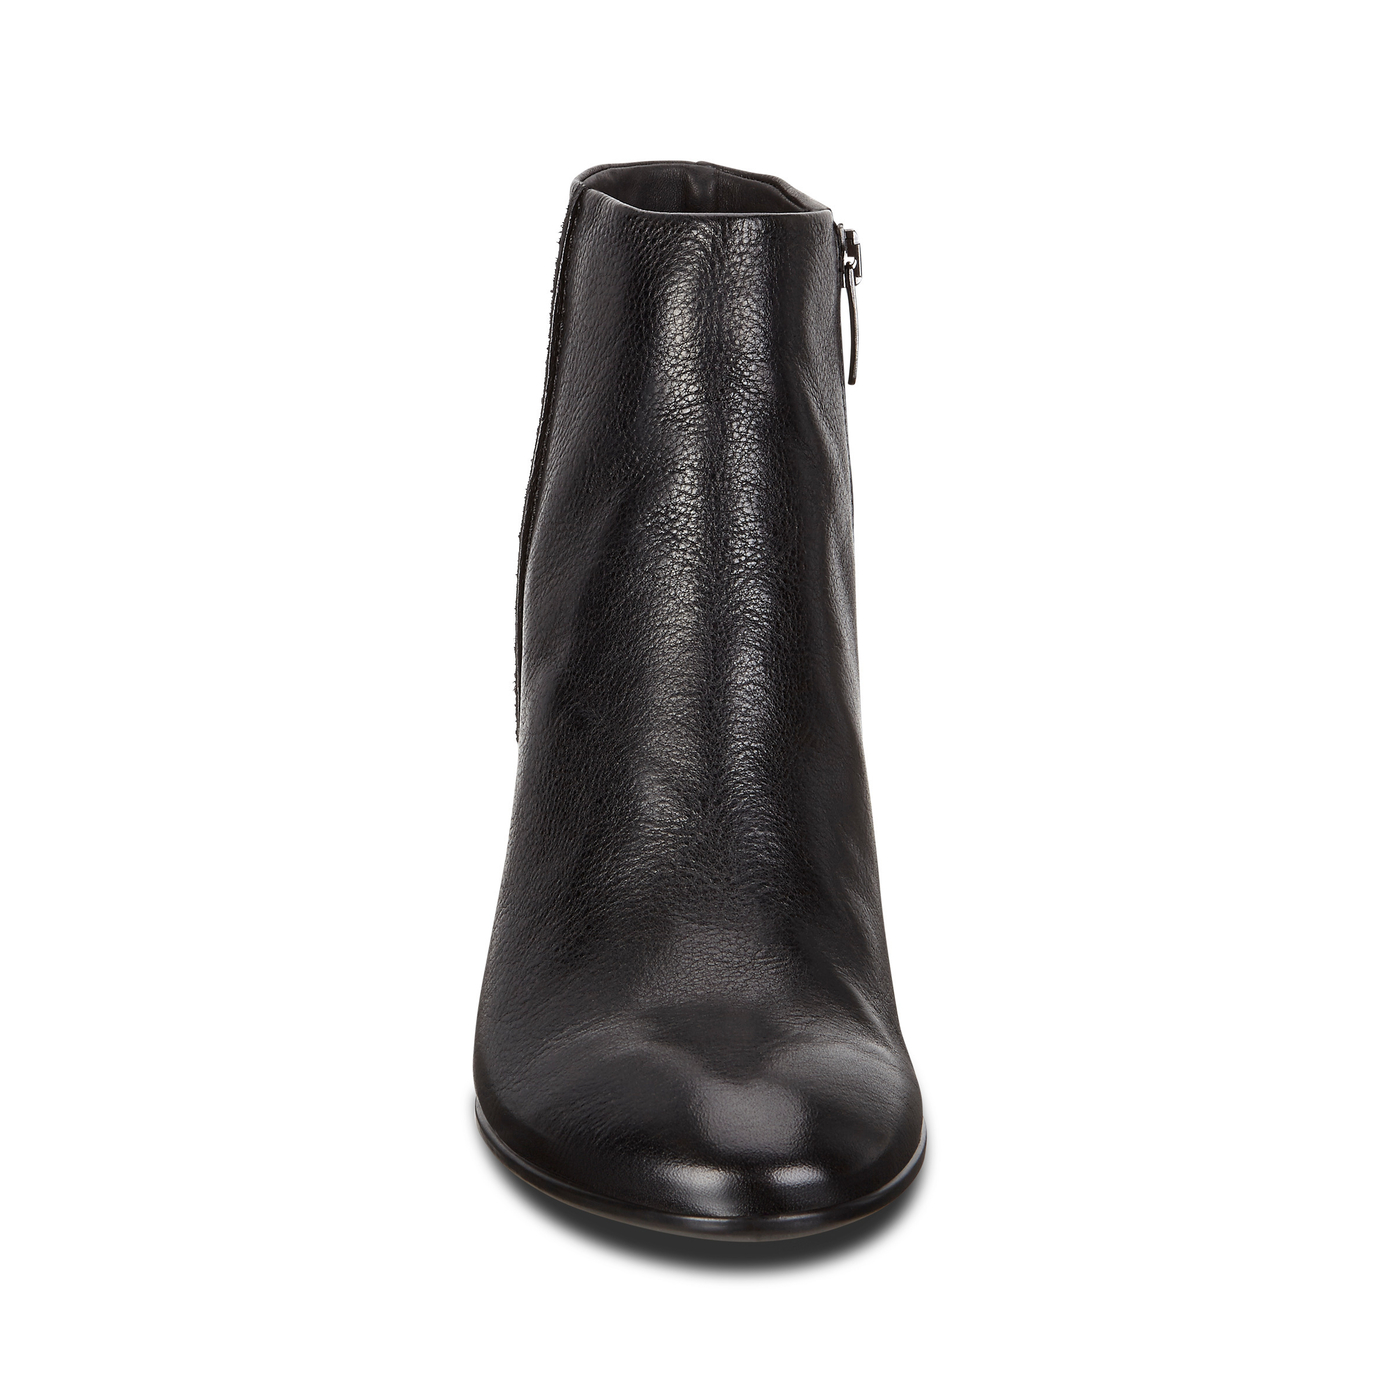 ECCO SHAPE BLOCK Ankle Boot 75mm